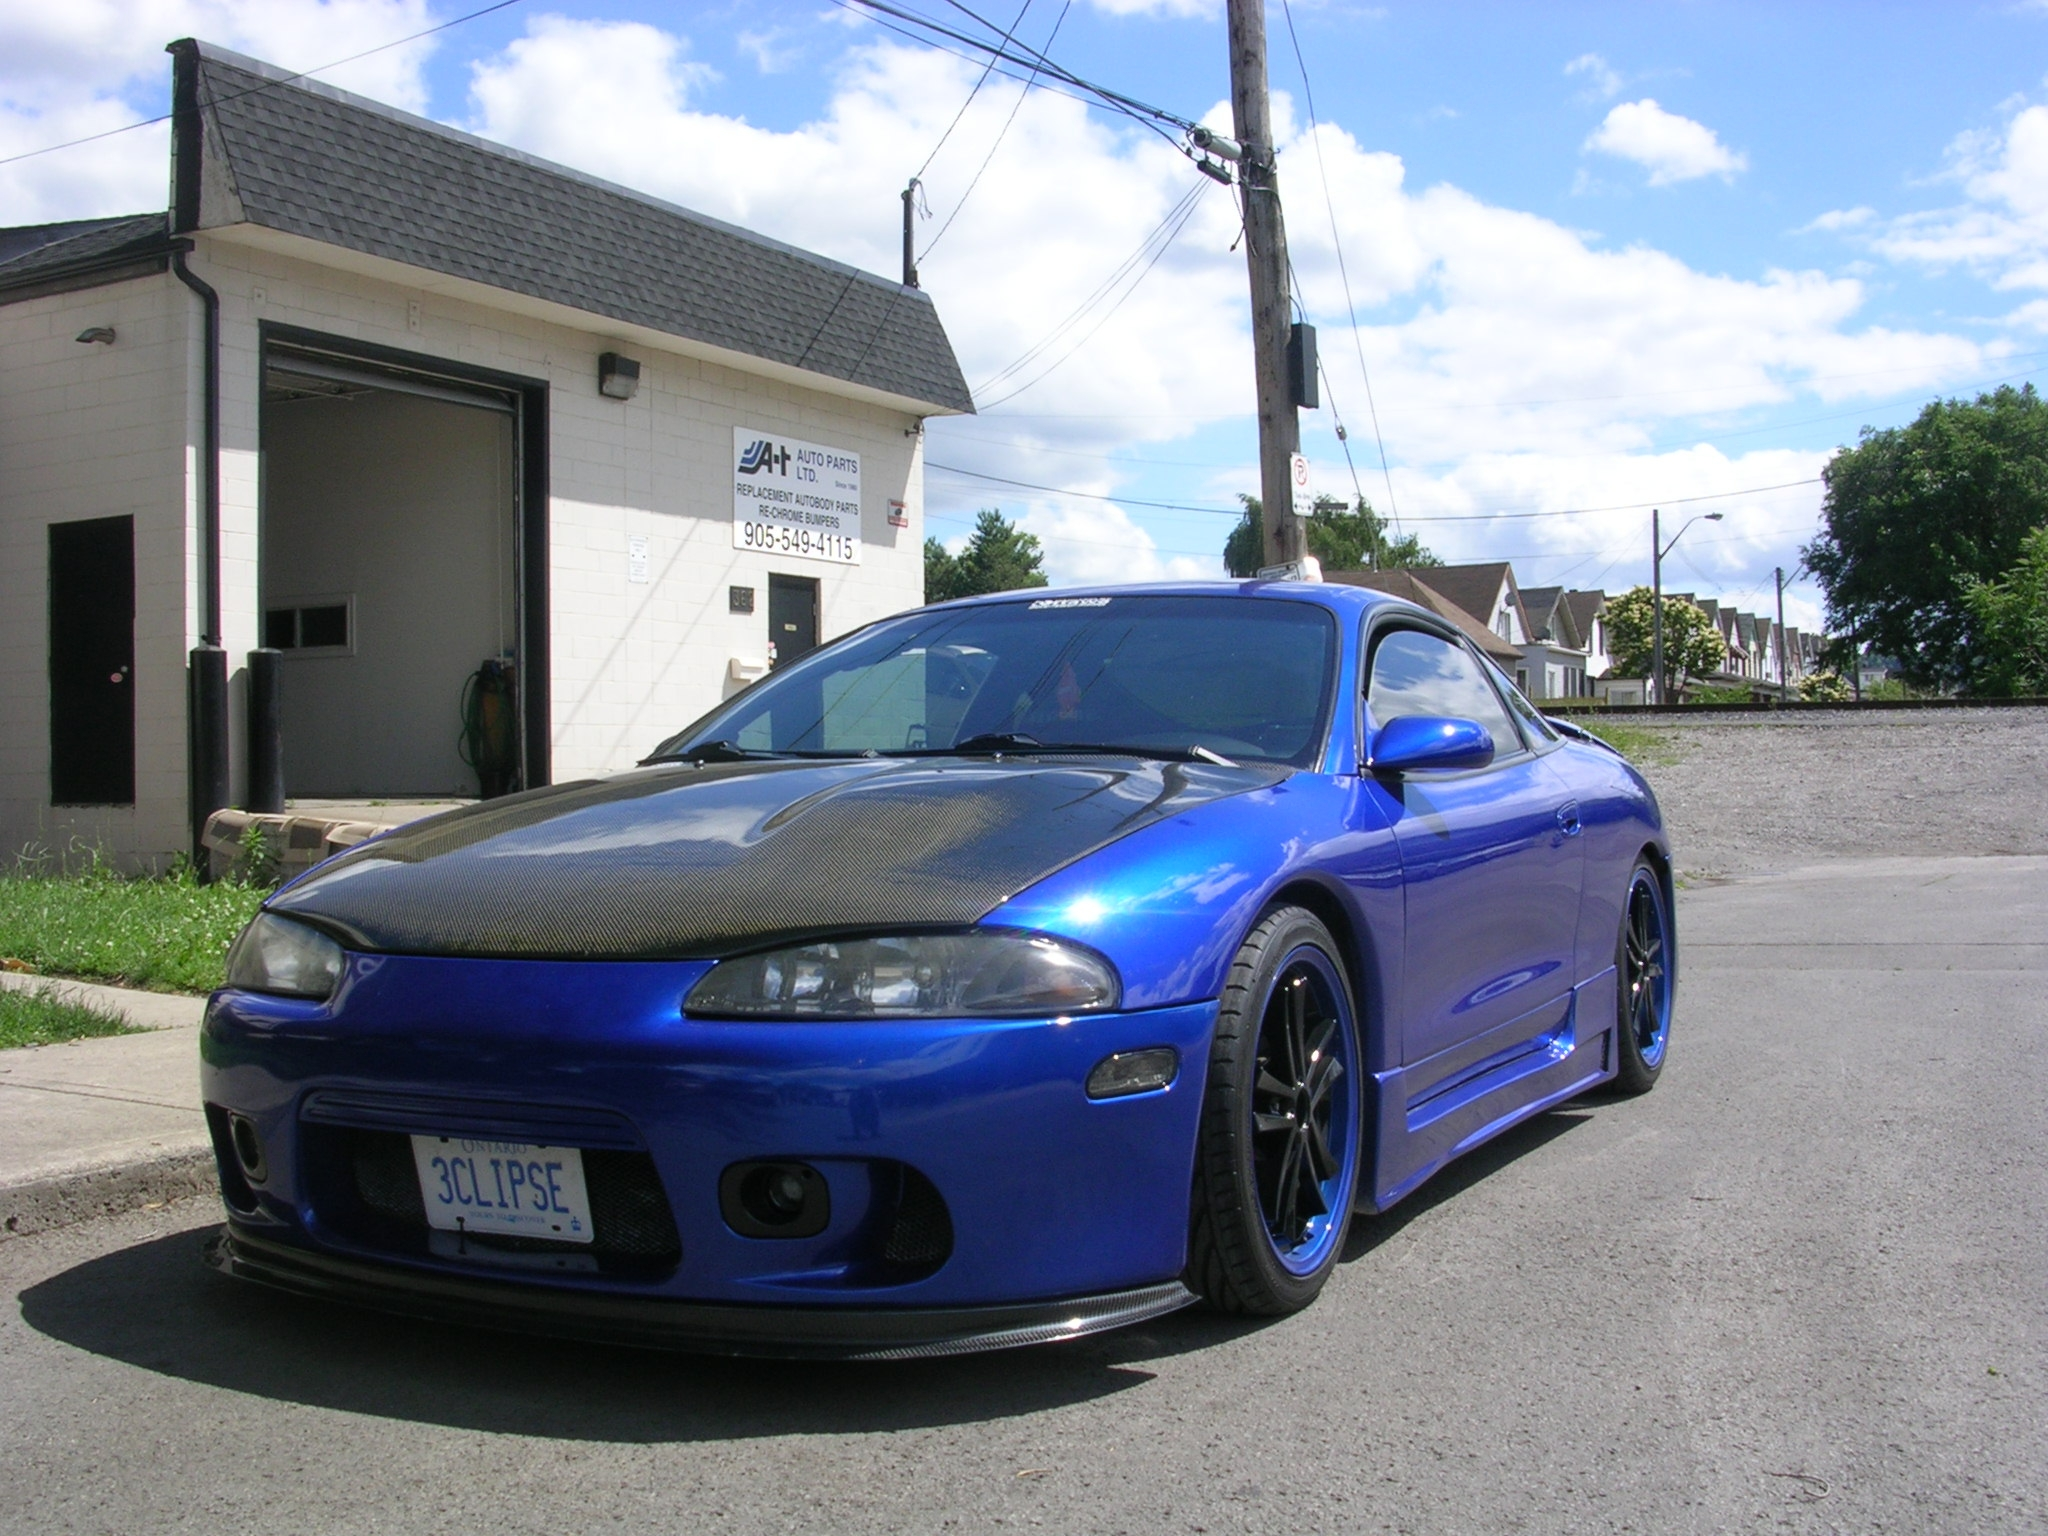 was with by six second swap motors turbo full eclipse under depot pushkino built mitsubishi generation gte hood l russia this in power sits engine inline a the